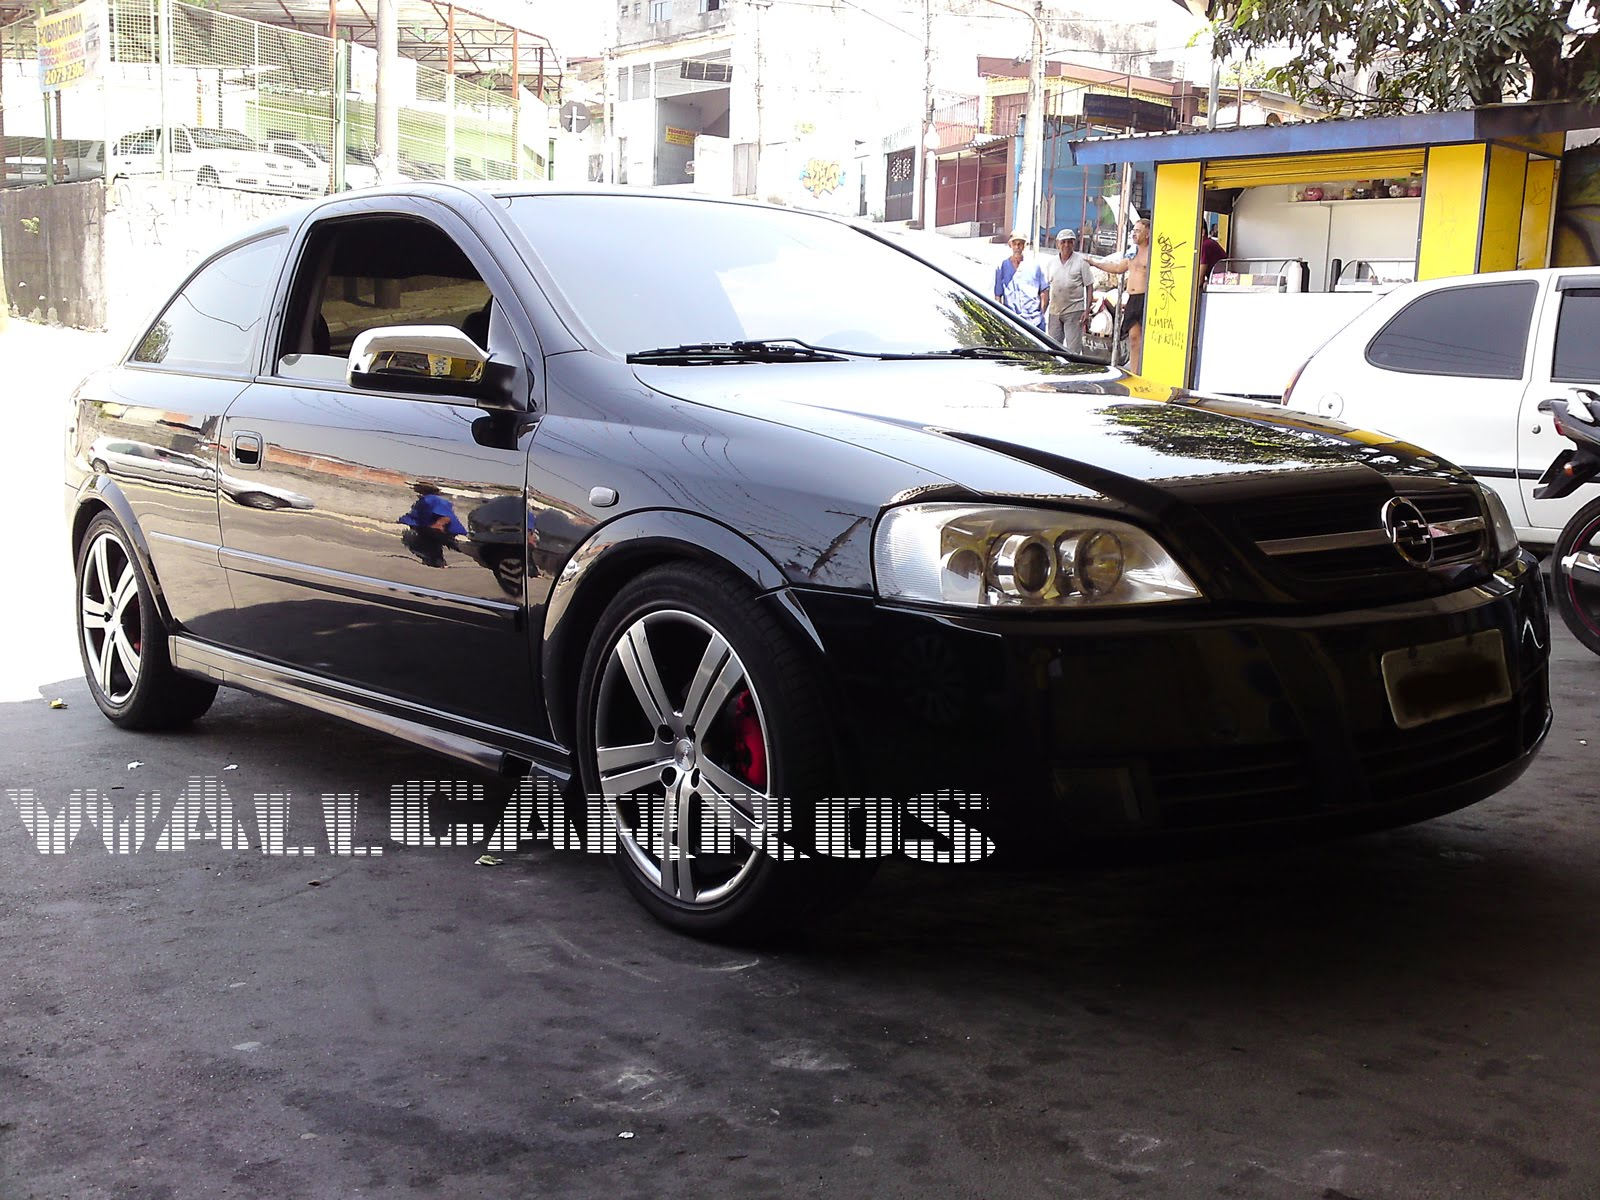 Chevrolet Astra Rodas aro 18 Posted by admin on 411 PM Astra preto